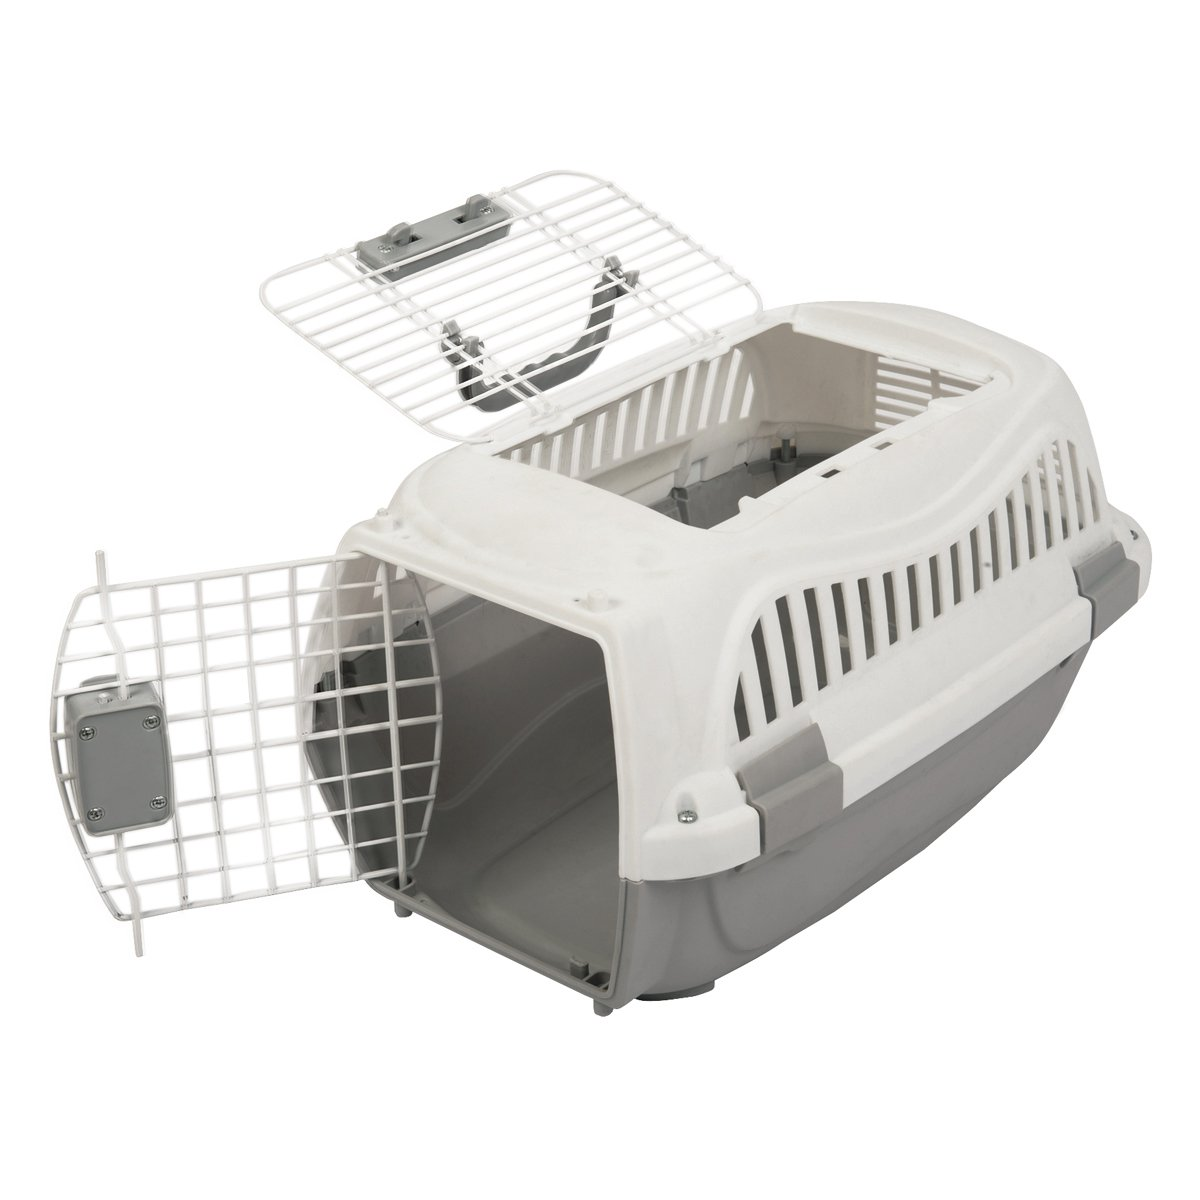 Favorite 22-Inch Portable Two Door Top Load Pet Plastic Carrier Crate for Small Animals by Favorite